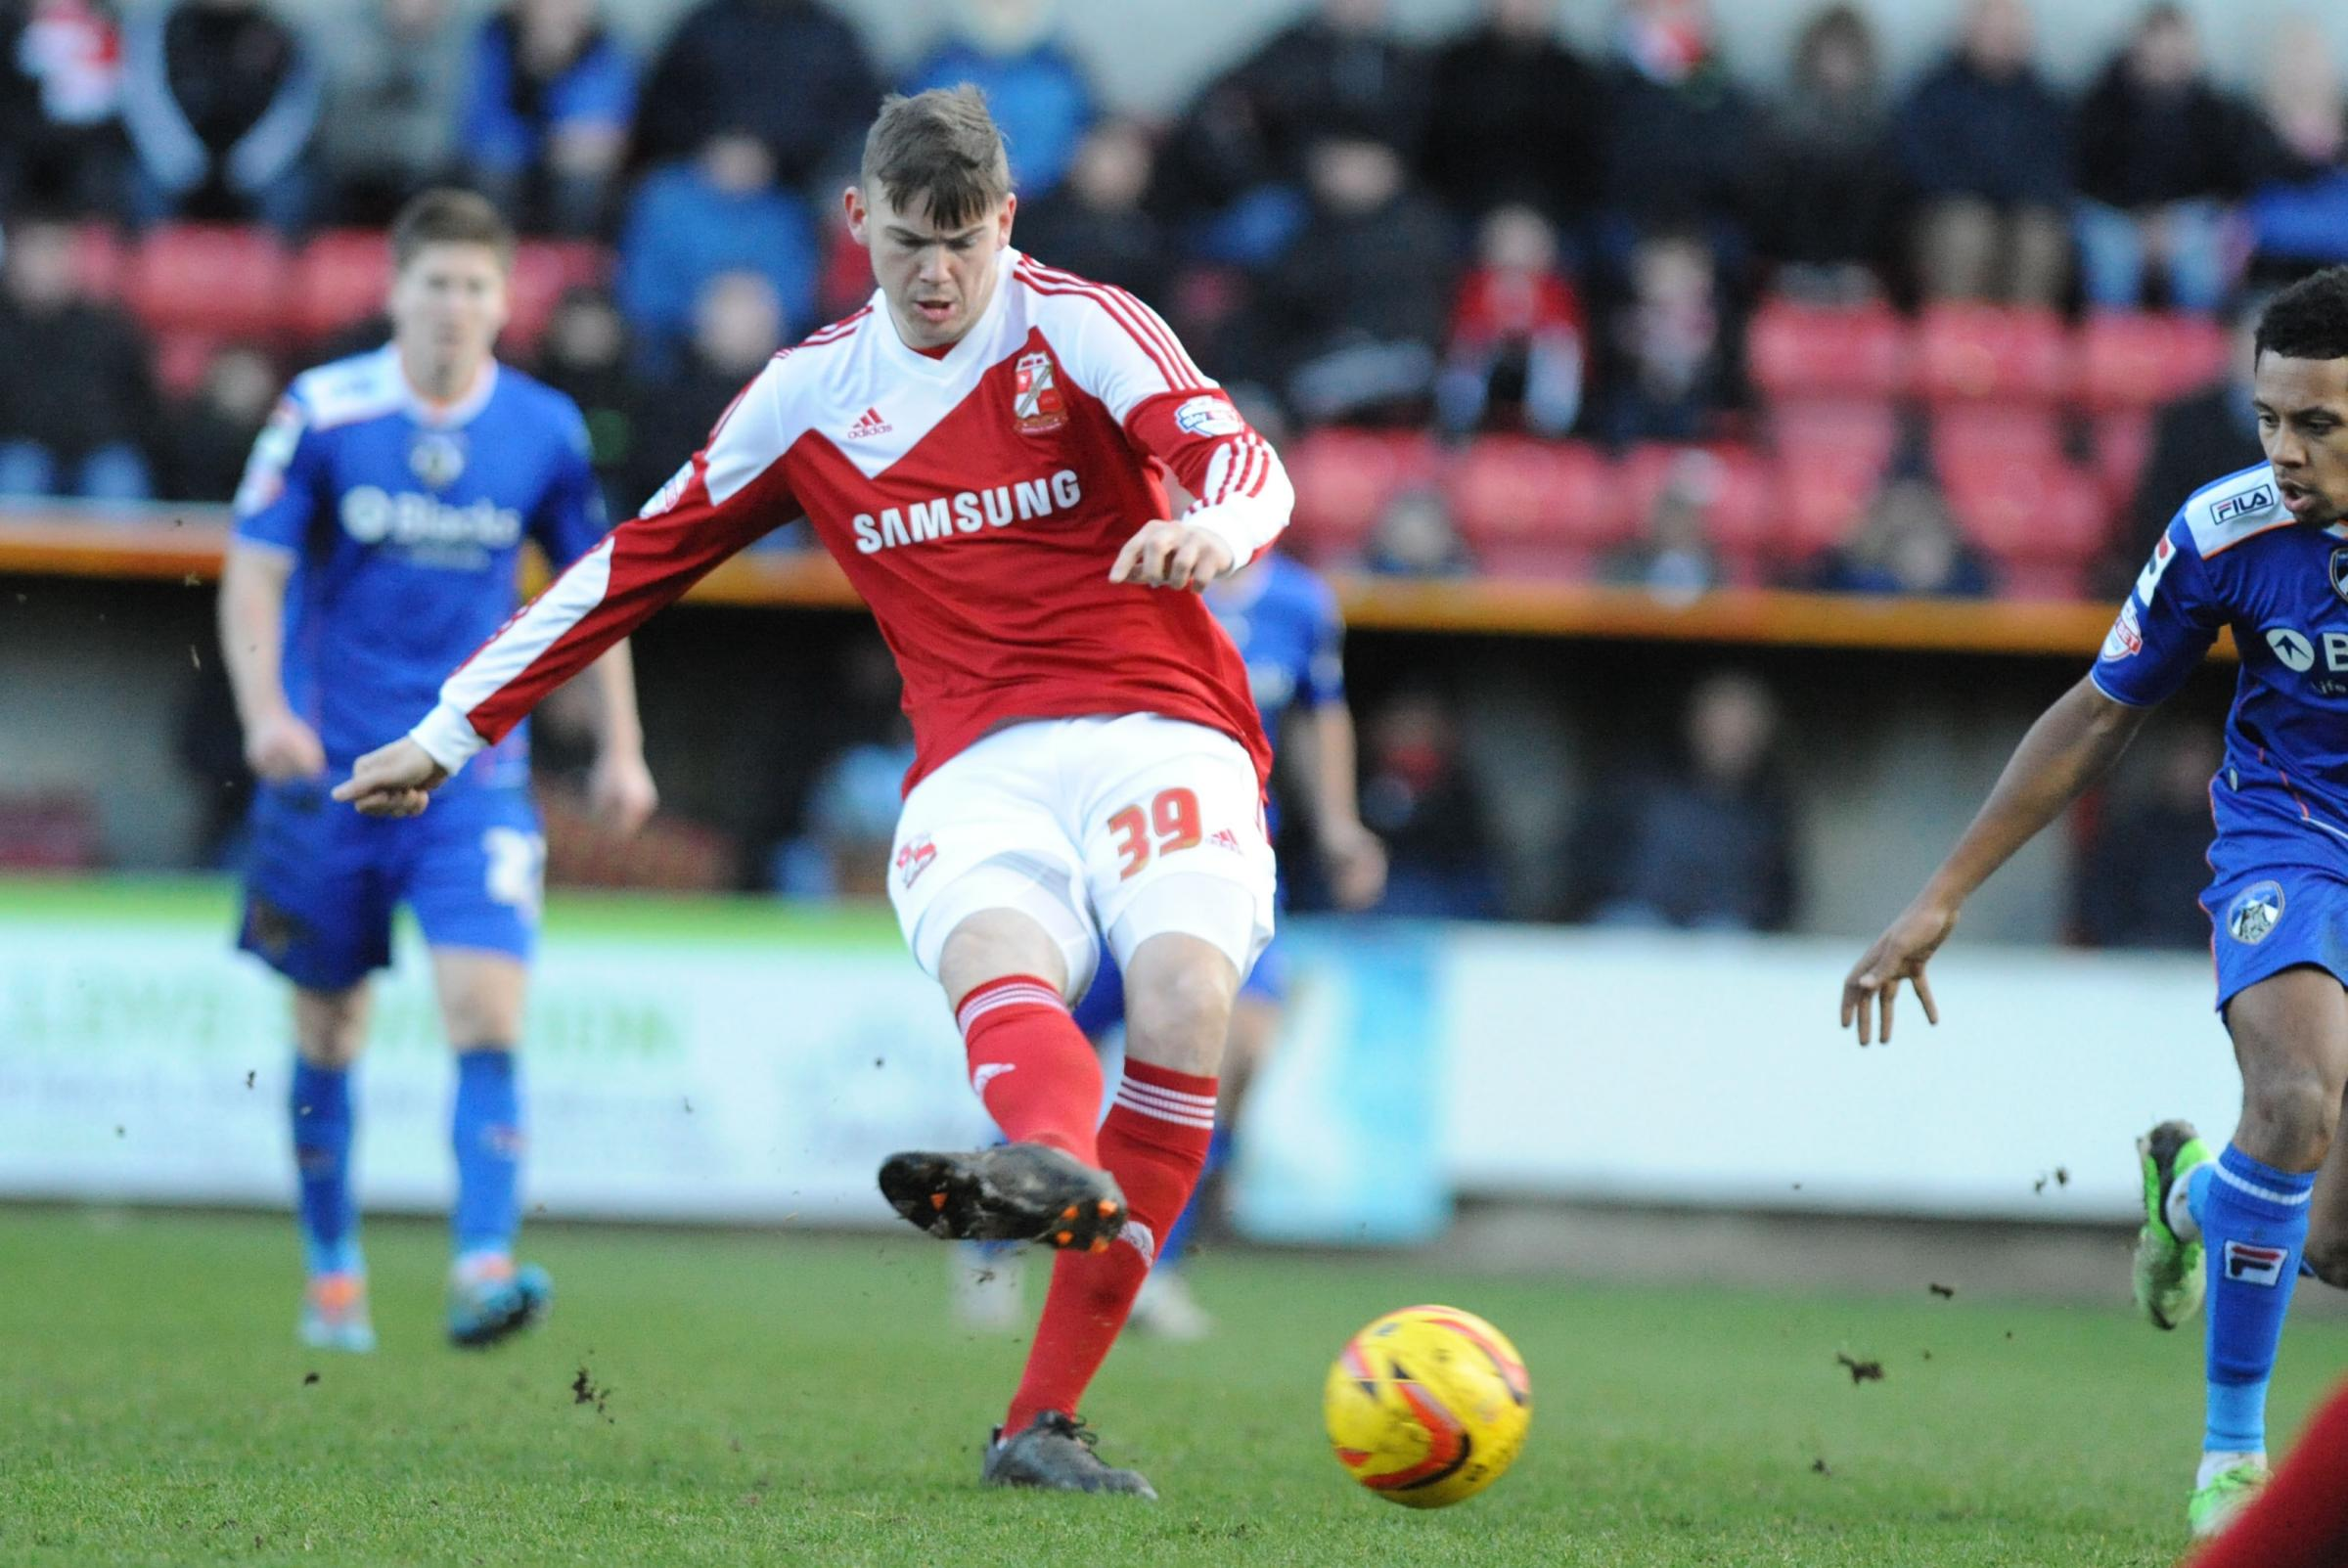 Town midfielder Ben Gladwin needs to simplify his game according his boss Mark Cooper